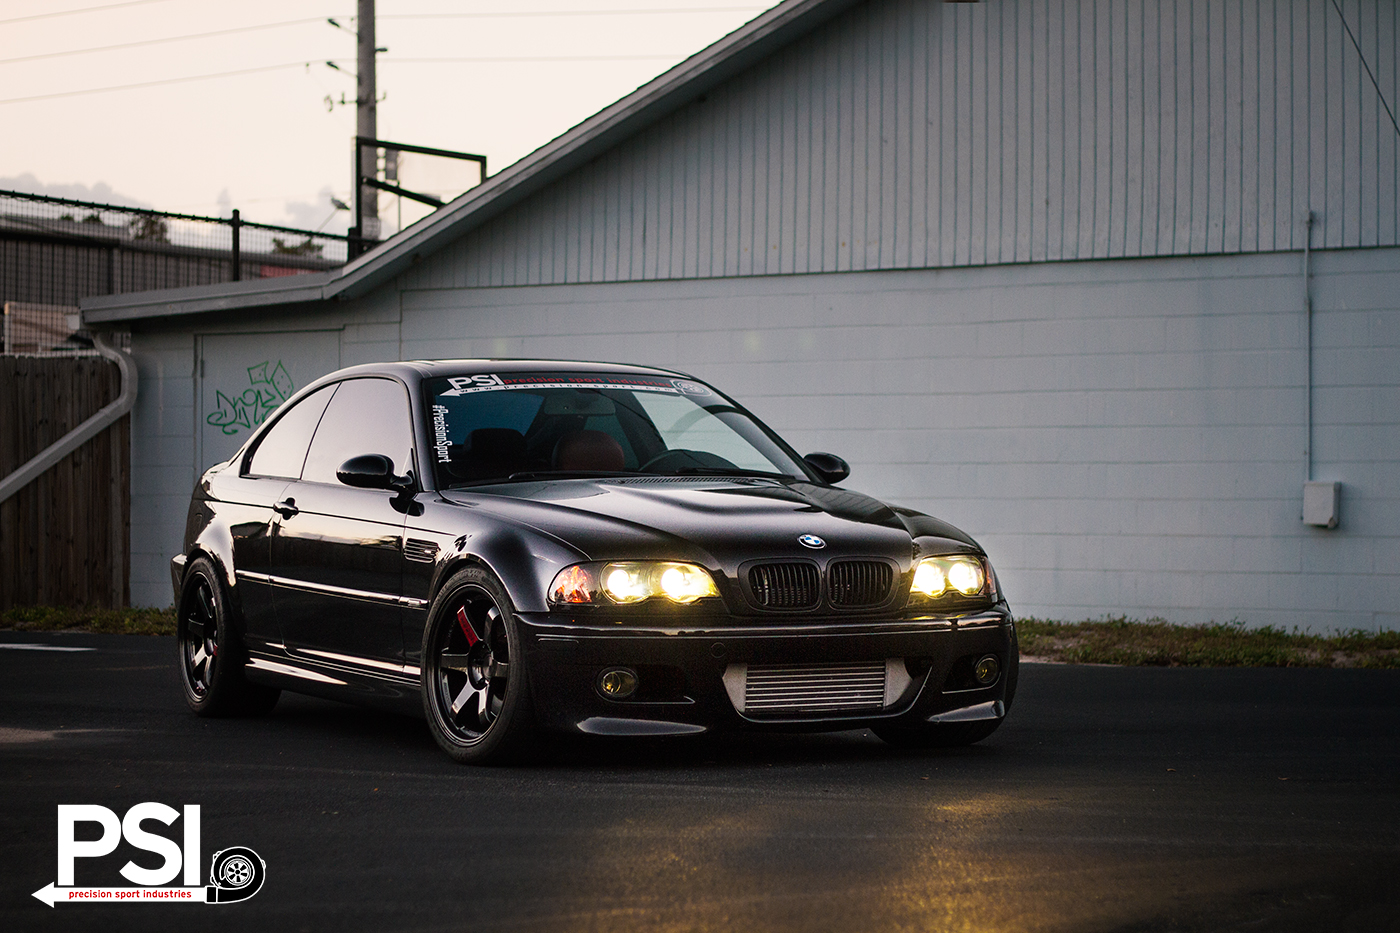 Black On Black Bmw E46 M3 From Psi Has 520 Hp Autoevolution